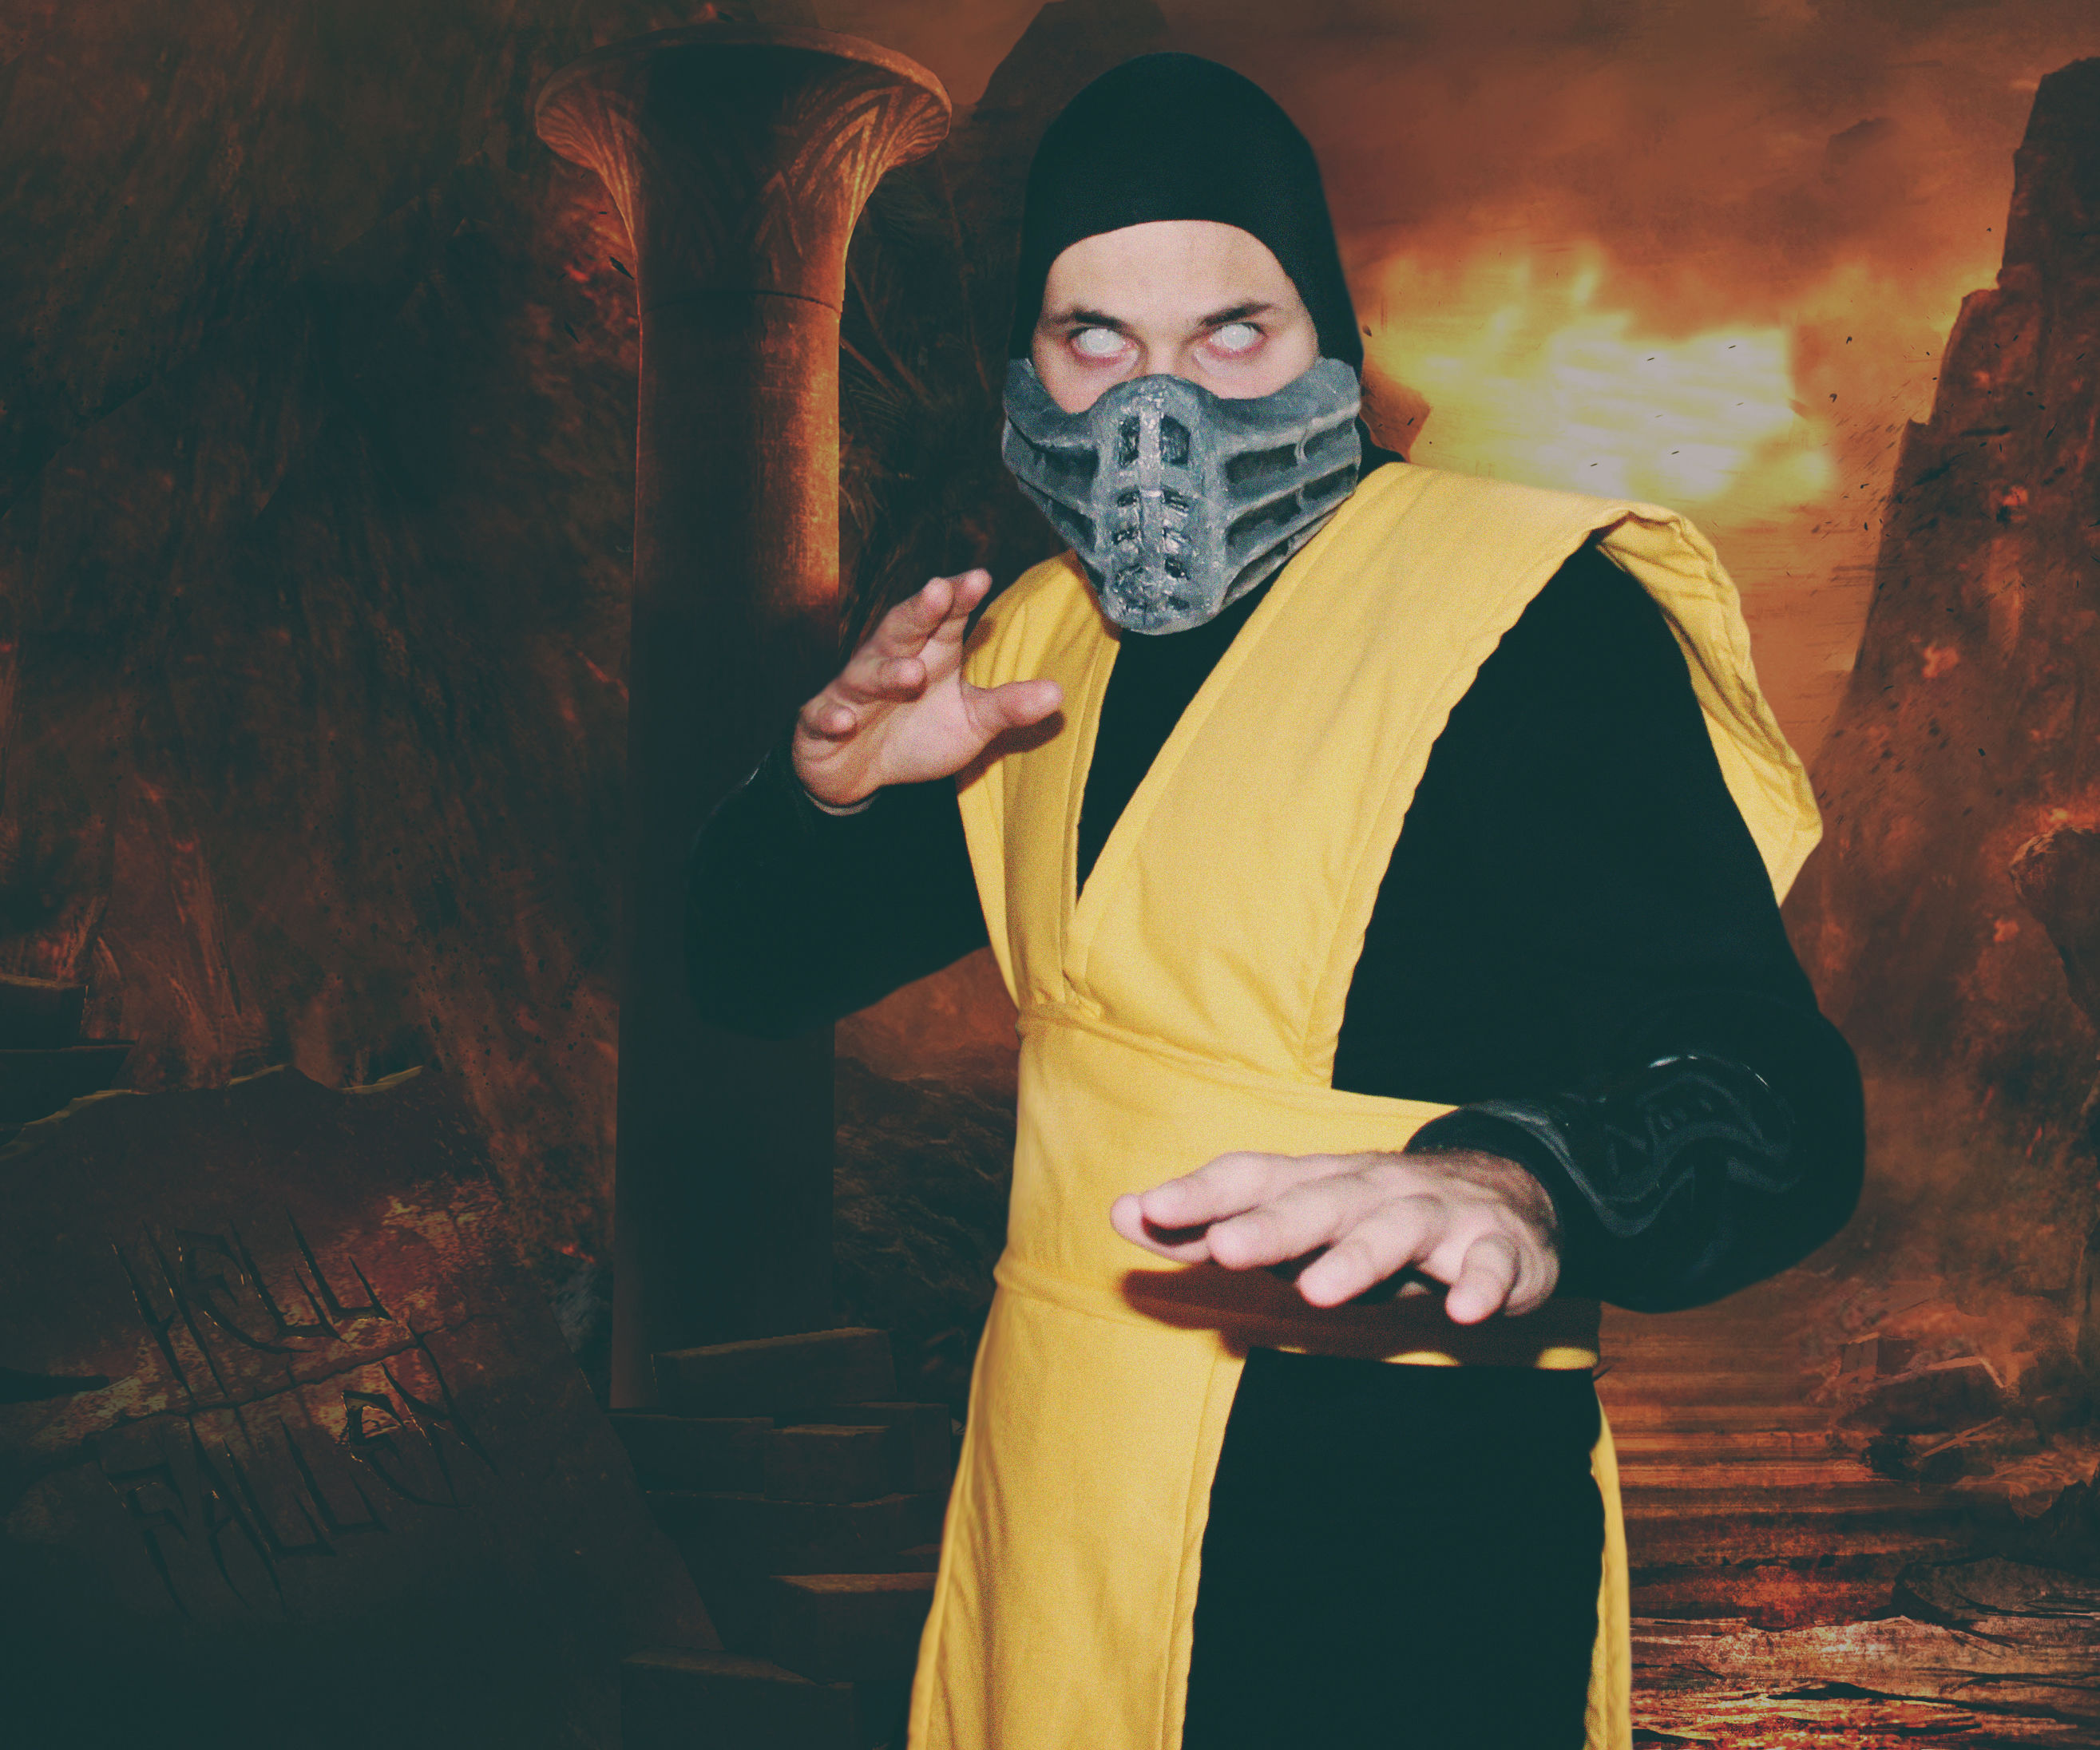 Scorpion - *Mortal Kombat* Costume Cosplay